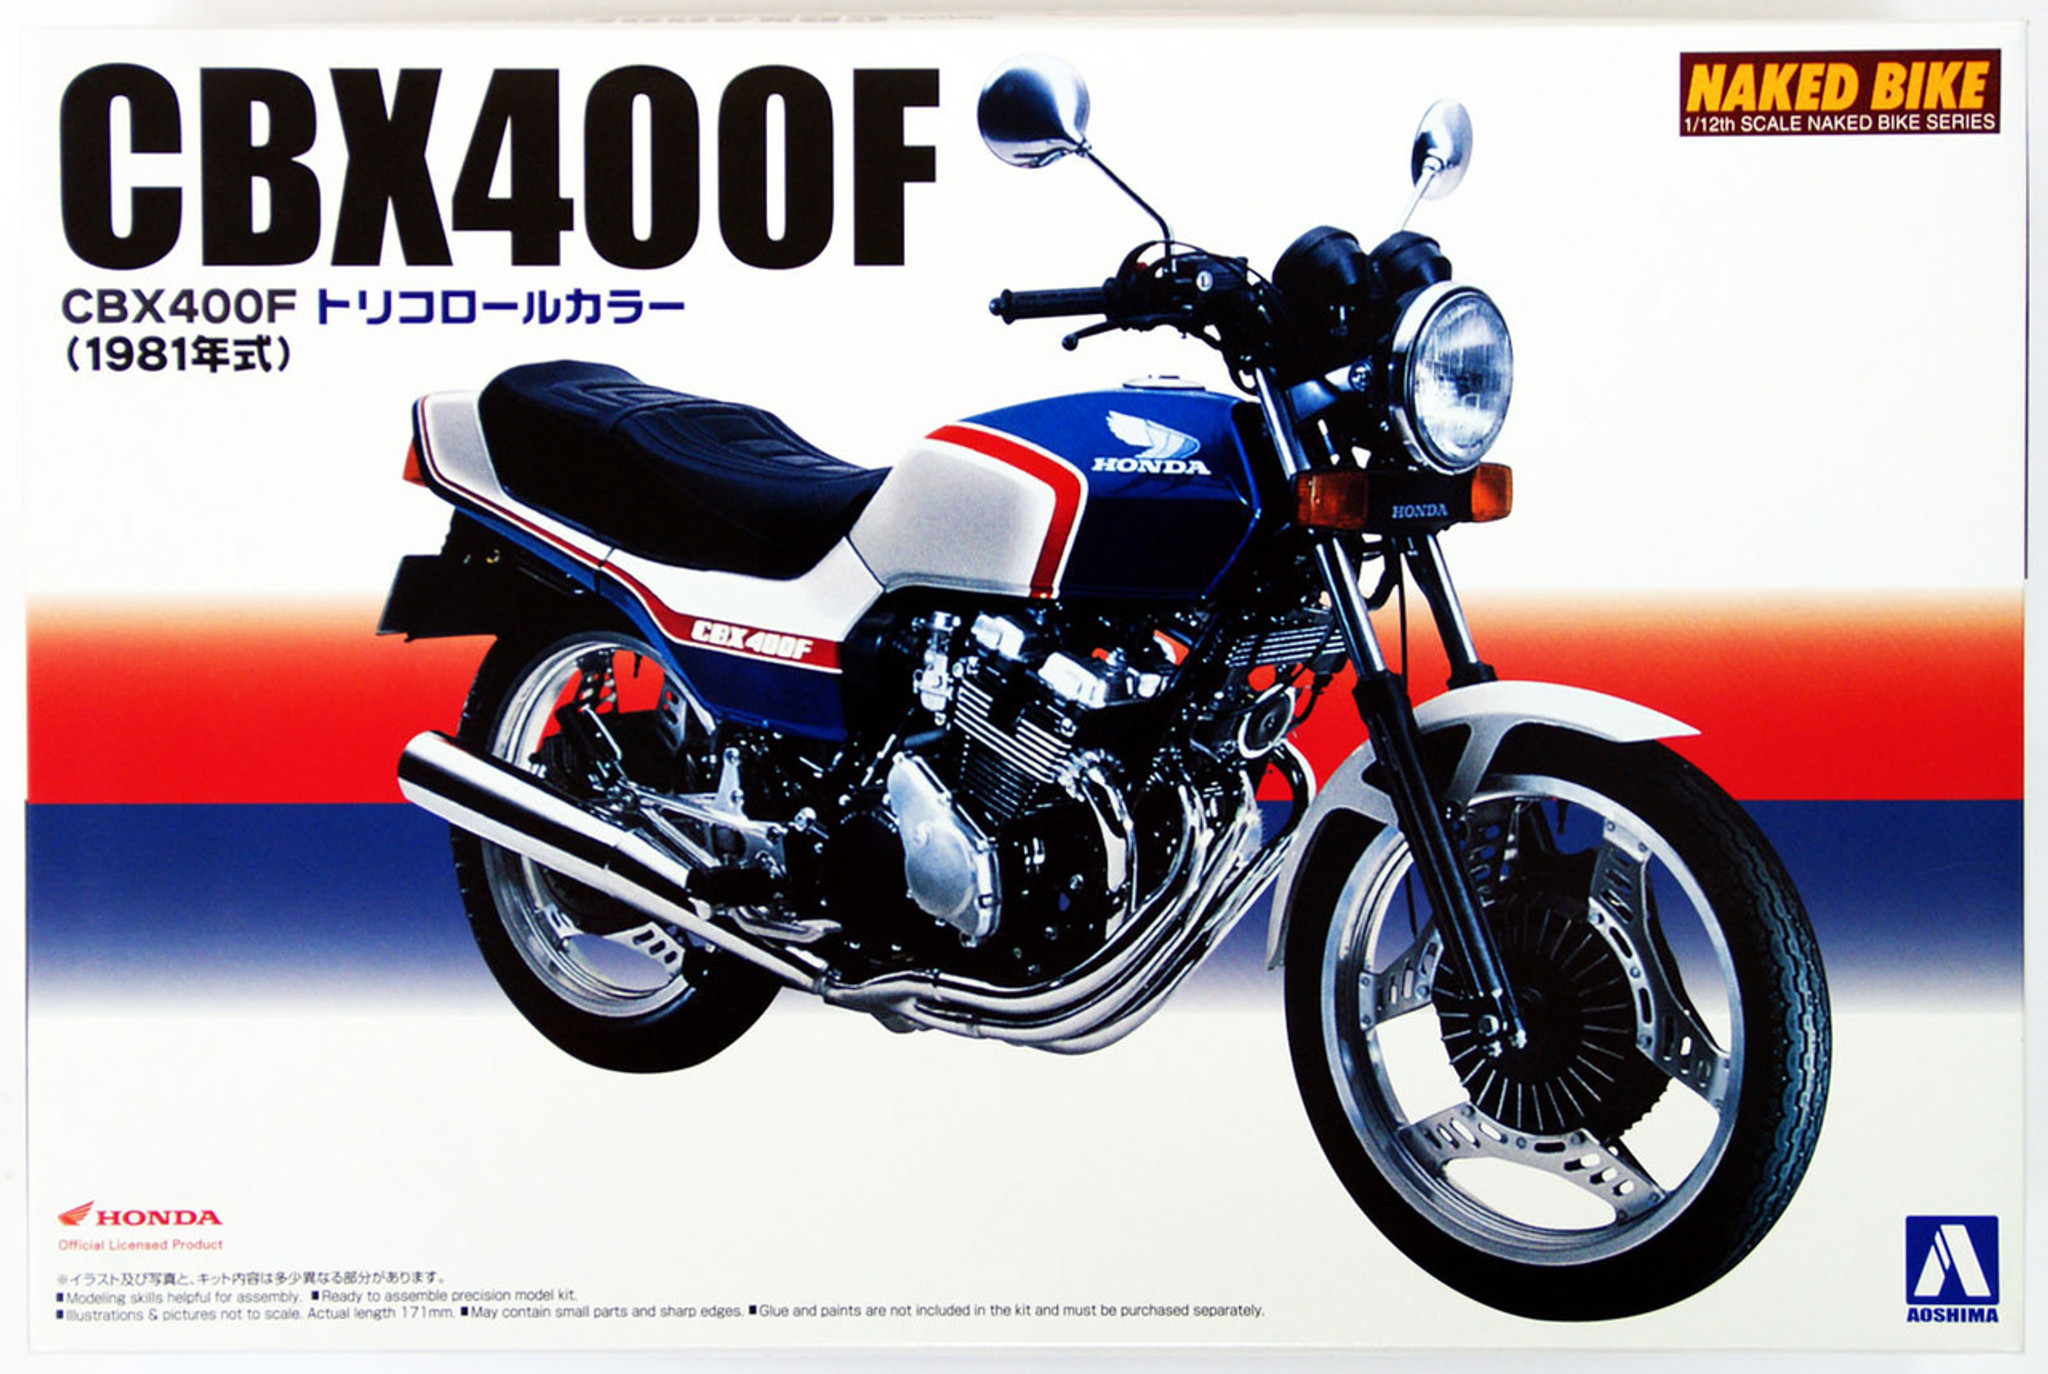 aoshima naked bike 28 41000 honda cbx400f tricolore 1 12. Black Bedroom Furniture Sets. Home Design Ideas